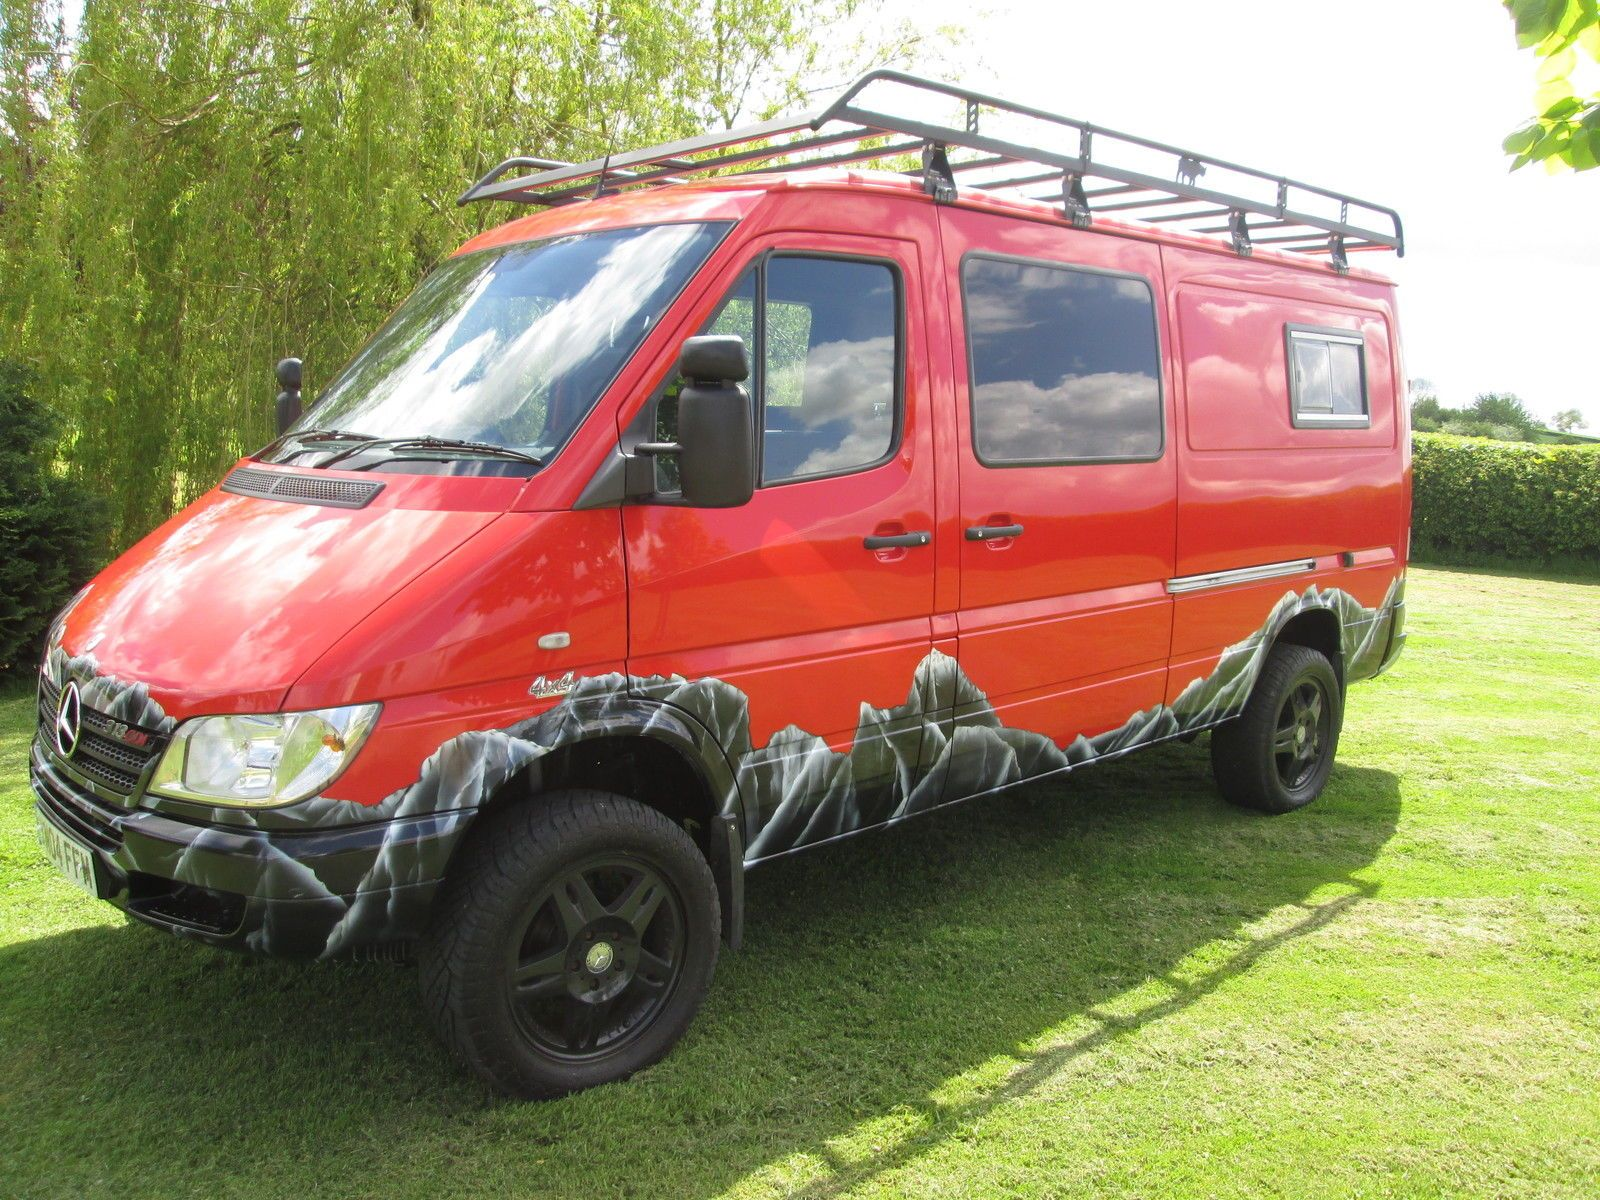 Mercedes sprinter 4x4 race camper van brand new for Mercedes benz van conversion